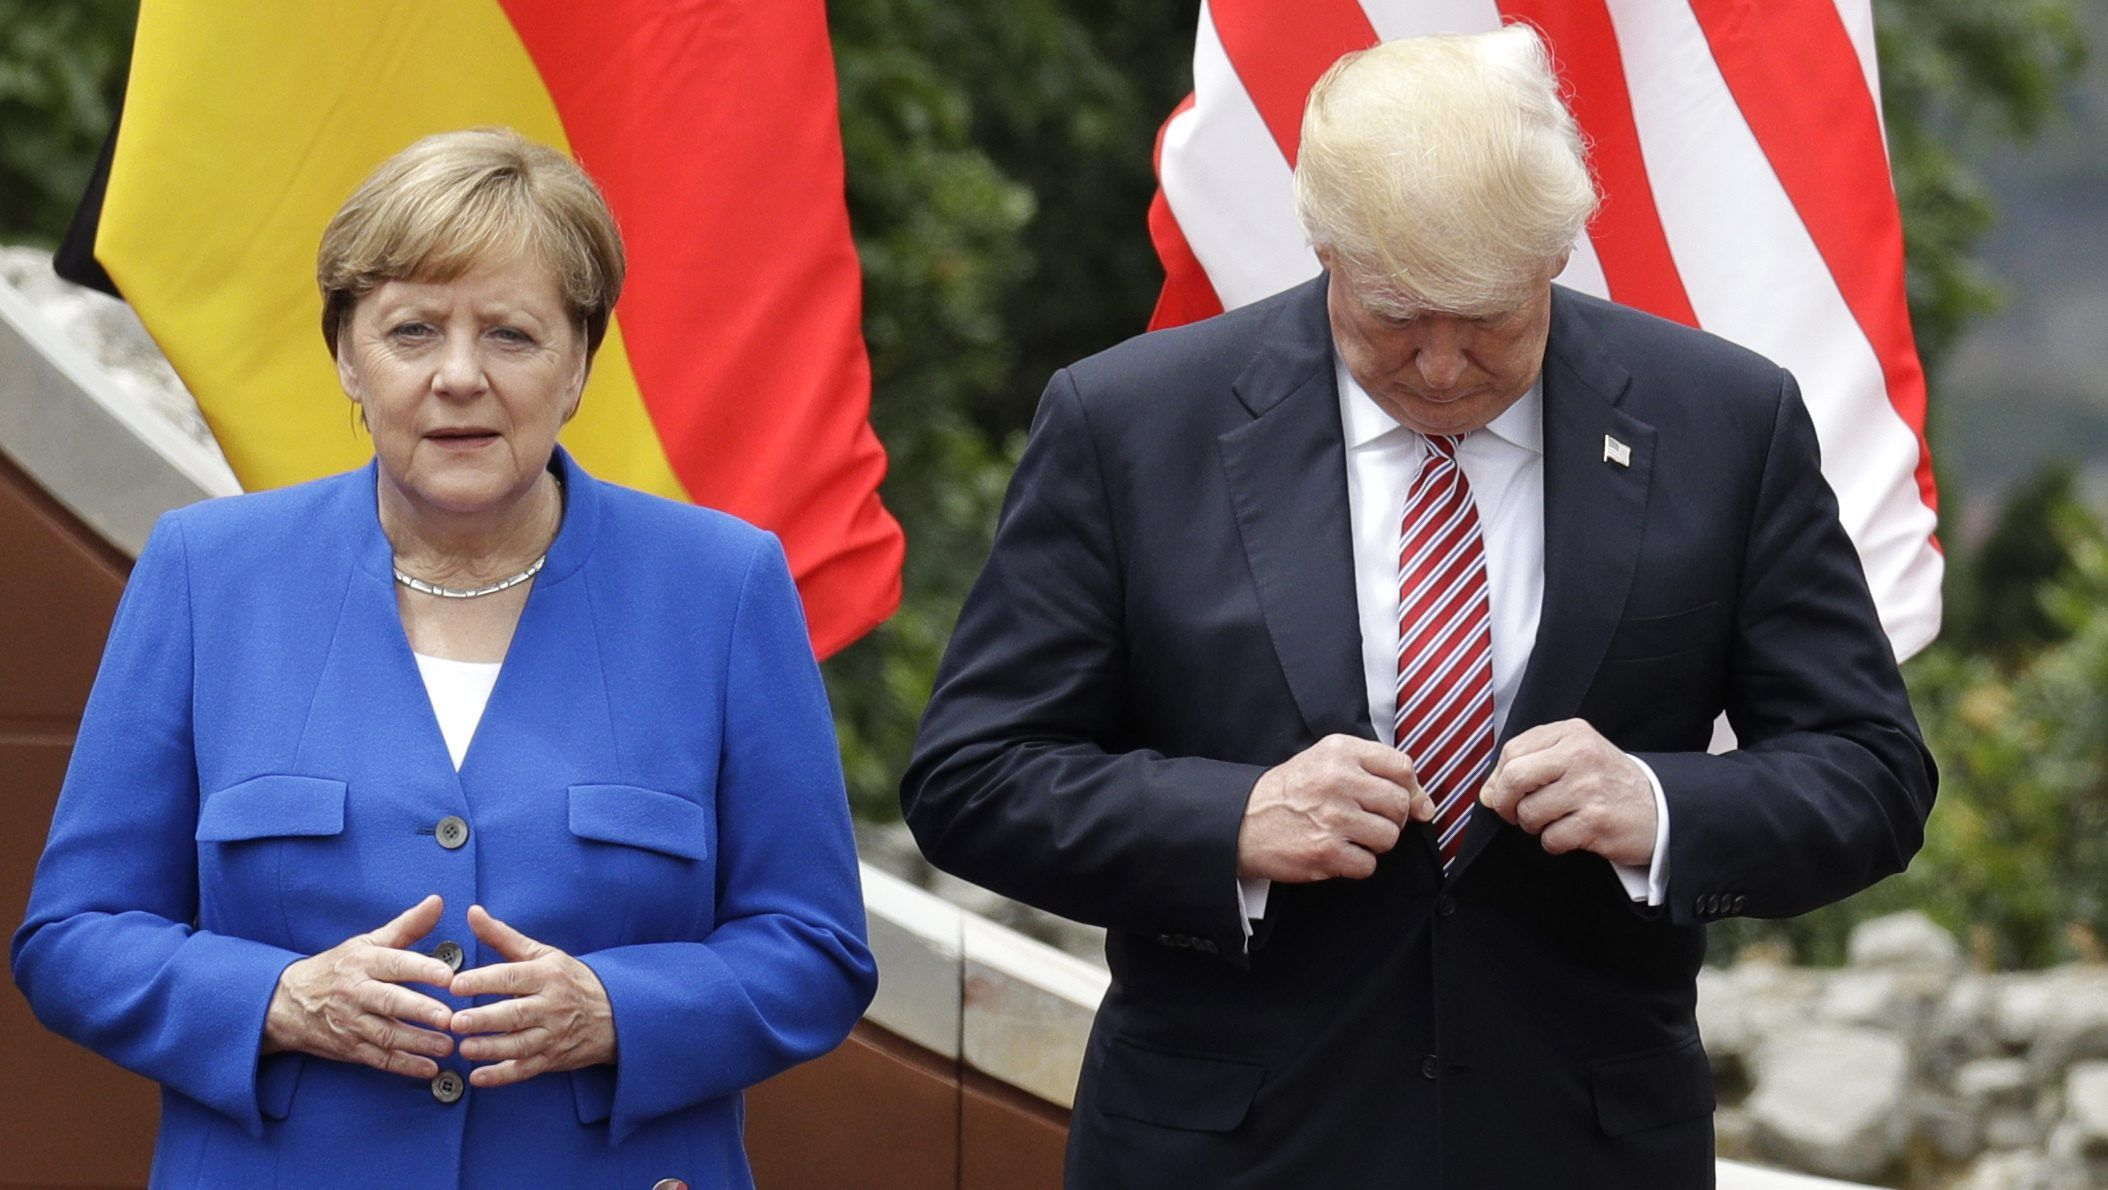 U.S. President Donald Trump, with German Chancellor Angela Merkel prior to a group photo